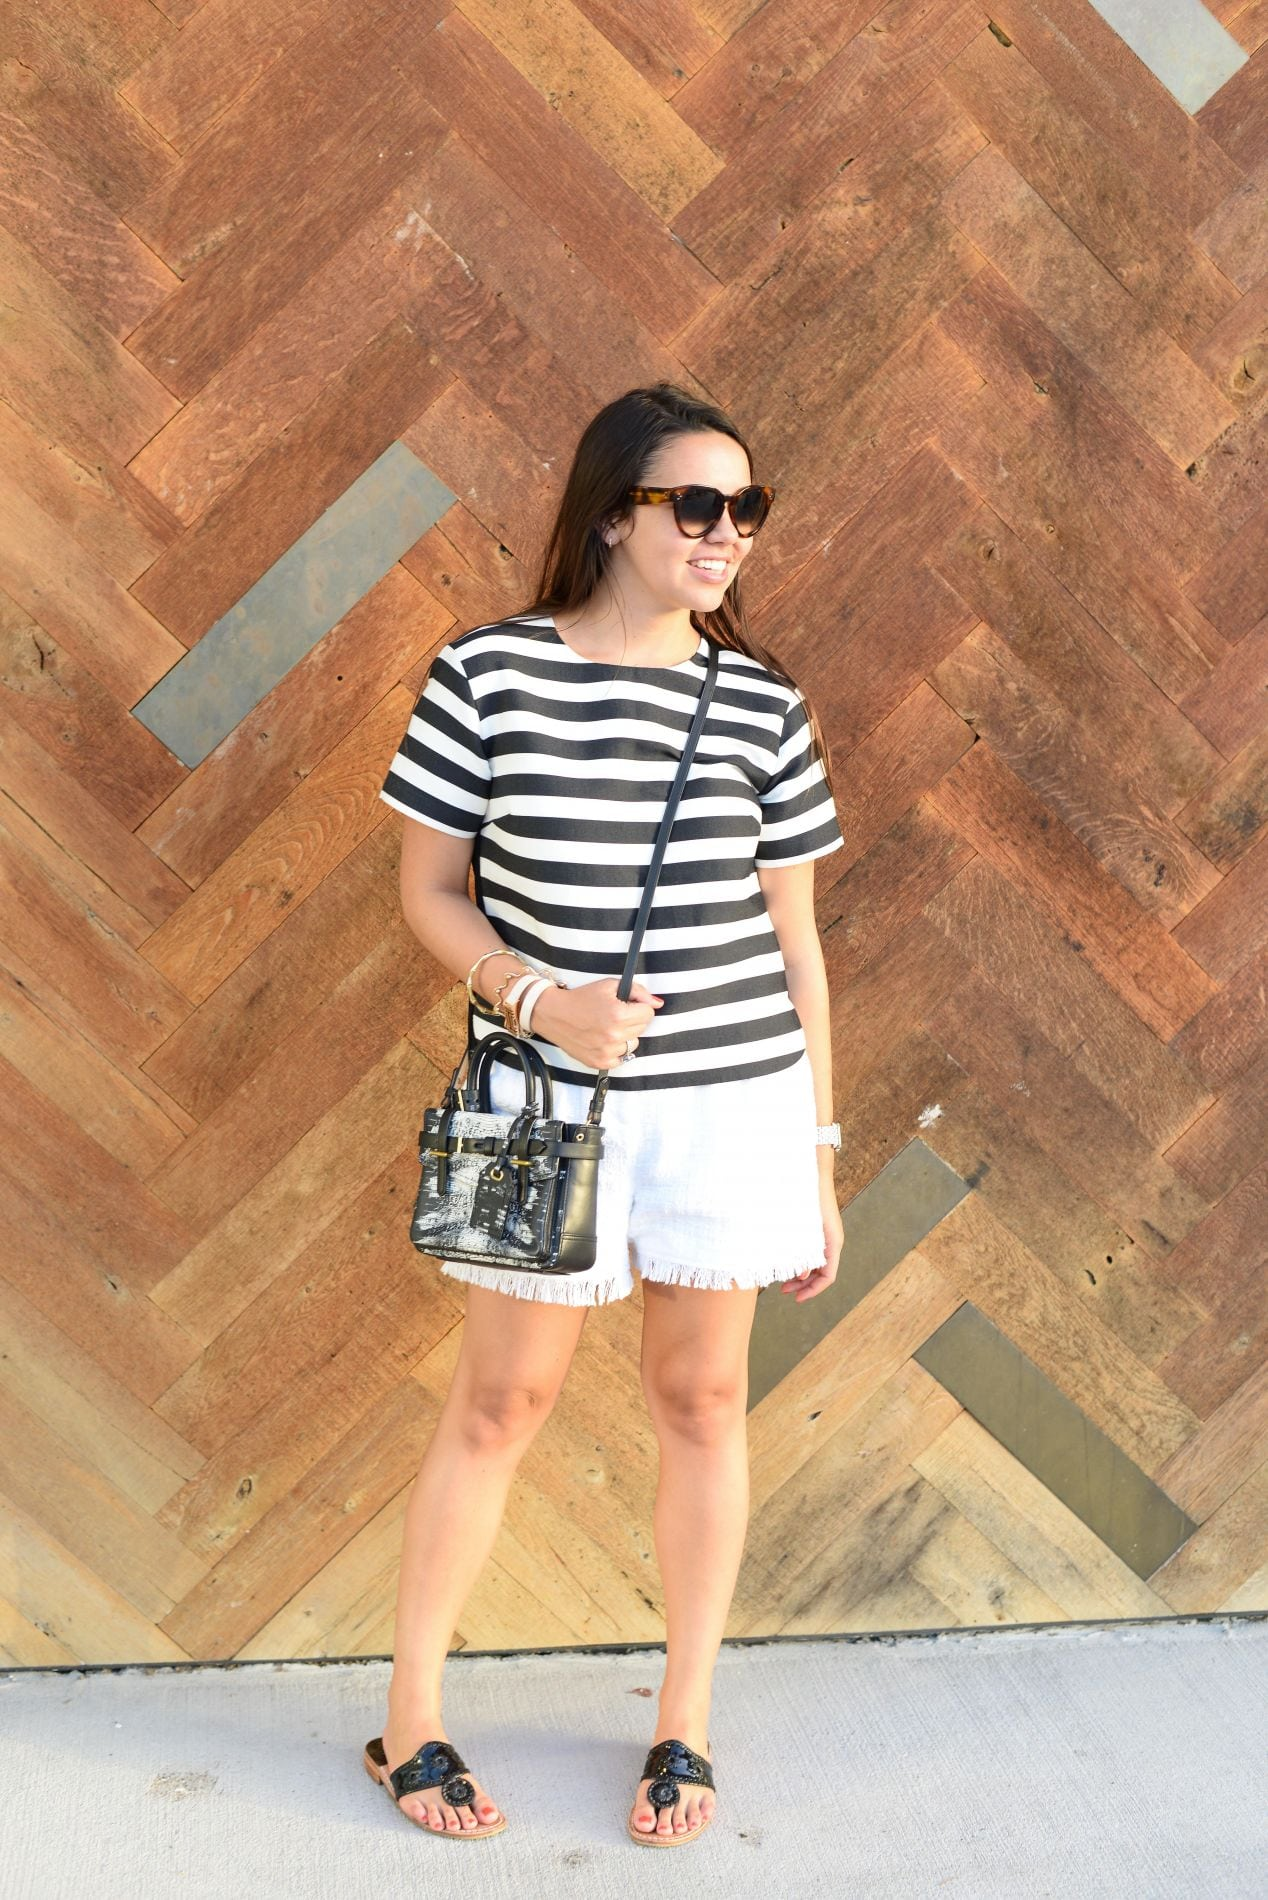 Kate Spade New York Summer Outfit - Alex Carreno